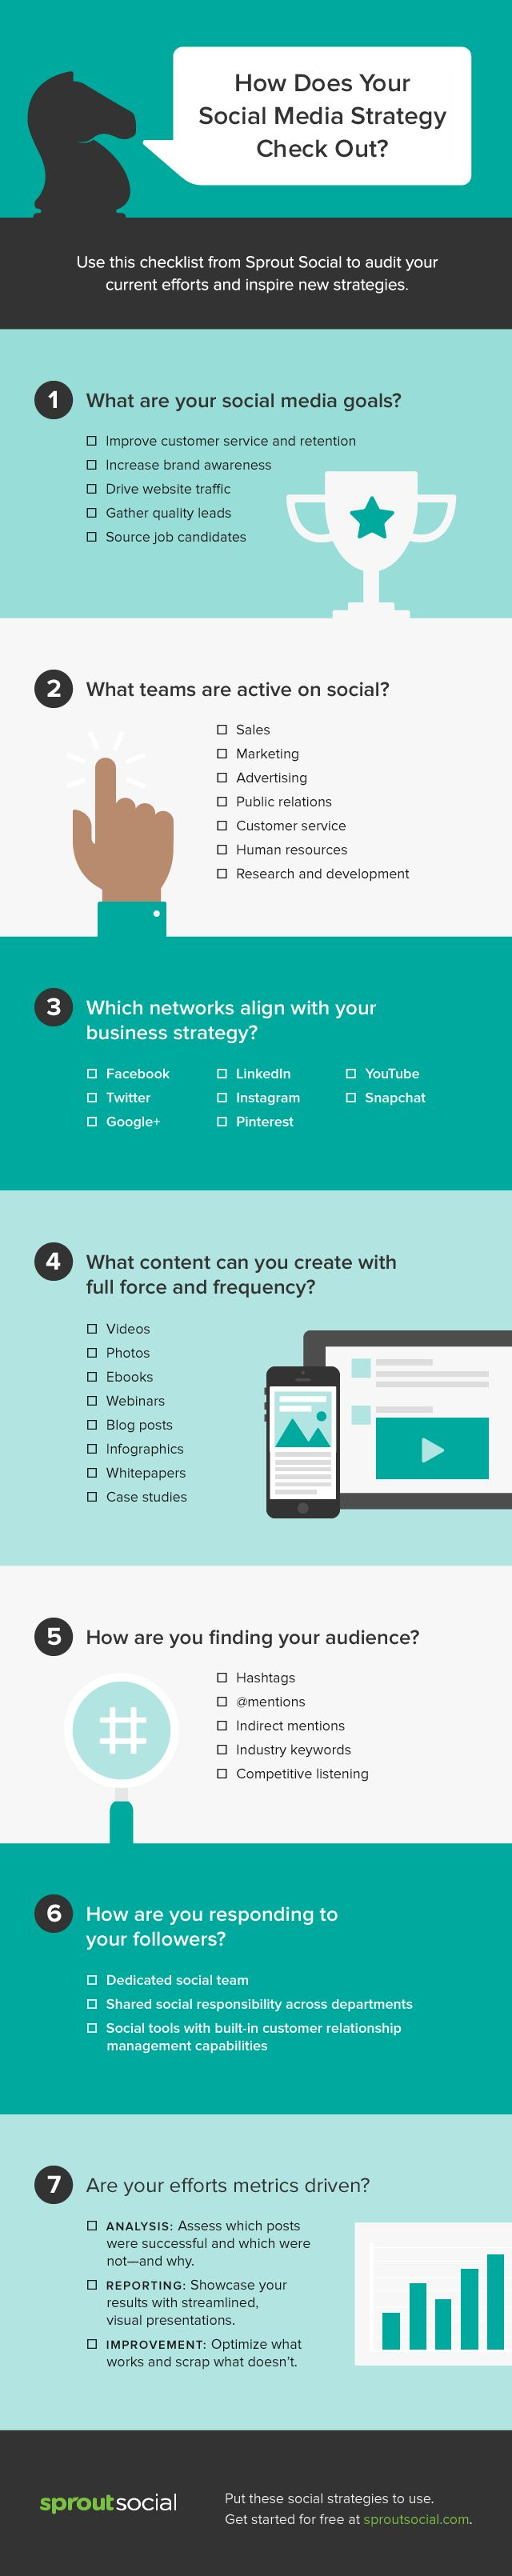 Creating a Winning Social Media Marketing Strategy [Infographic]   Social Media Today